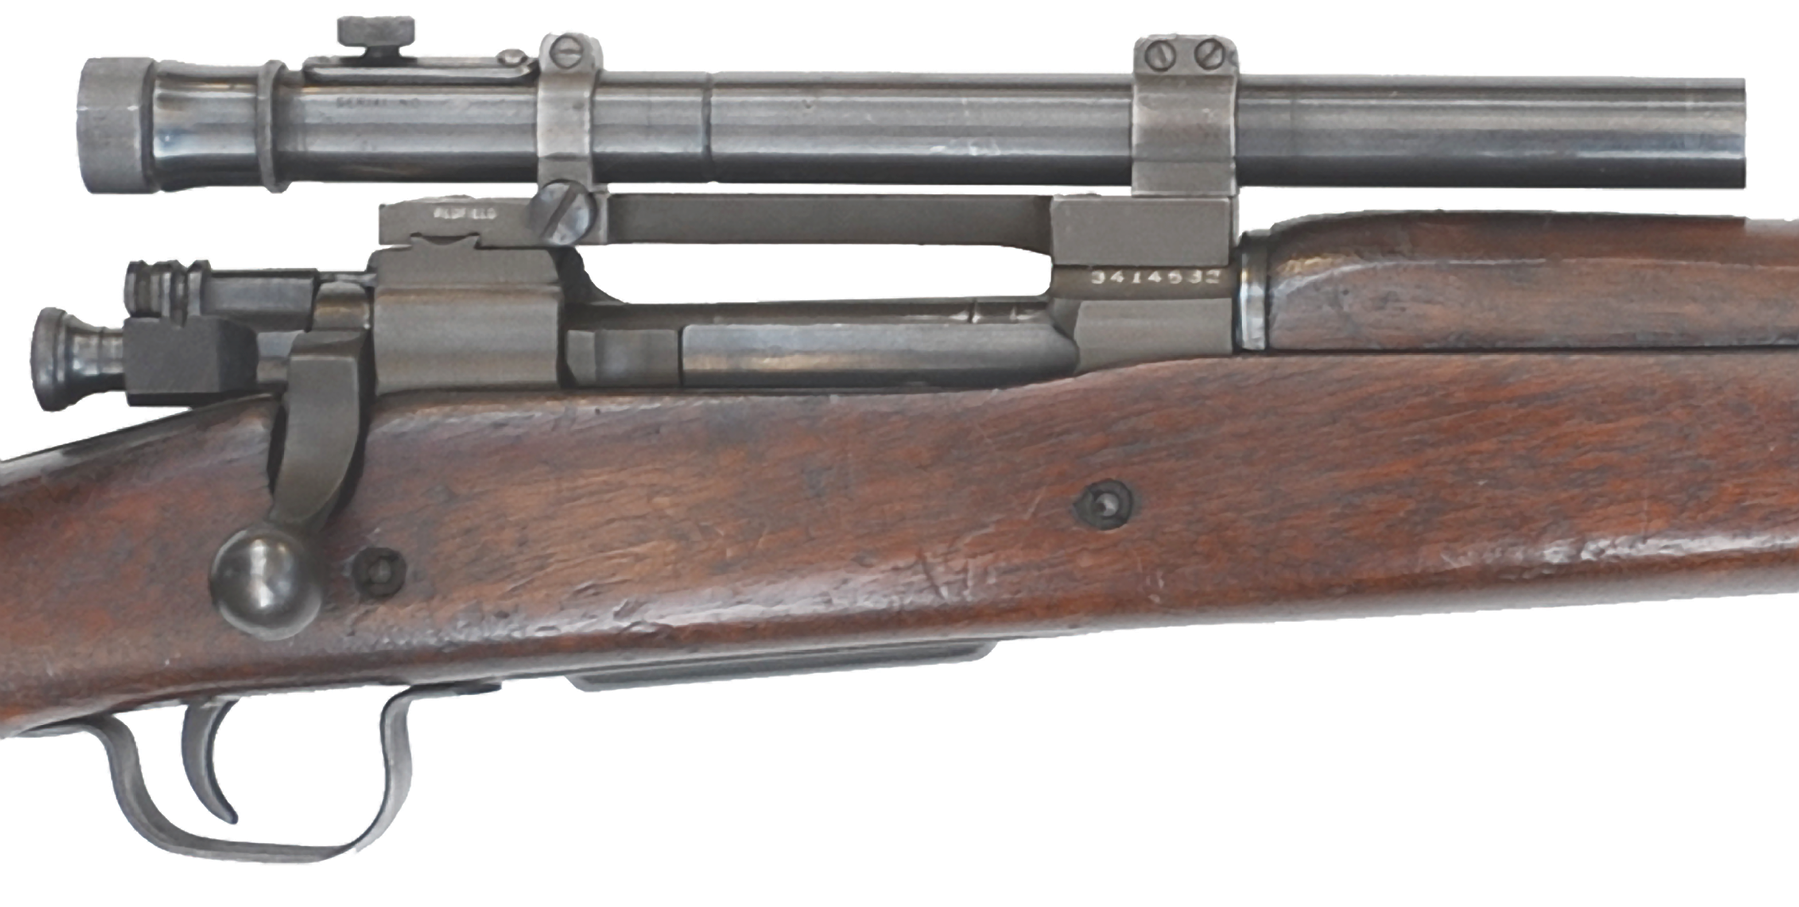 The M73B1 Telescopic Sight was a modification of the Weaver 330-C commercial scope. Most of the nation's optical manufacturers were engaged in war work when requests for the telescopic sight were announced. Weaver, although a small company in El Paso, Texas, stepped up and managed to maintain sufficient production throughout the war.